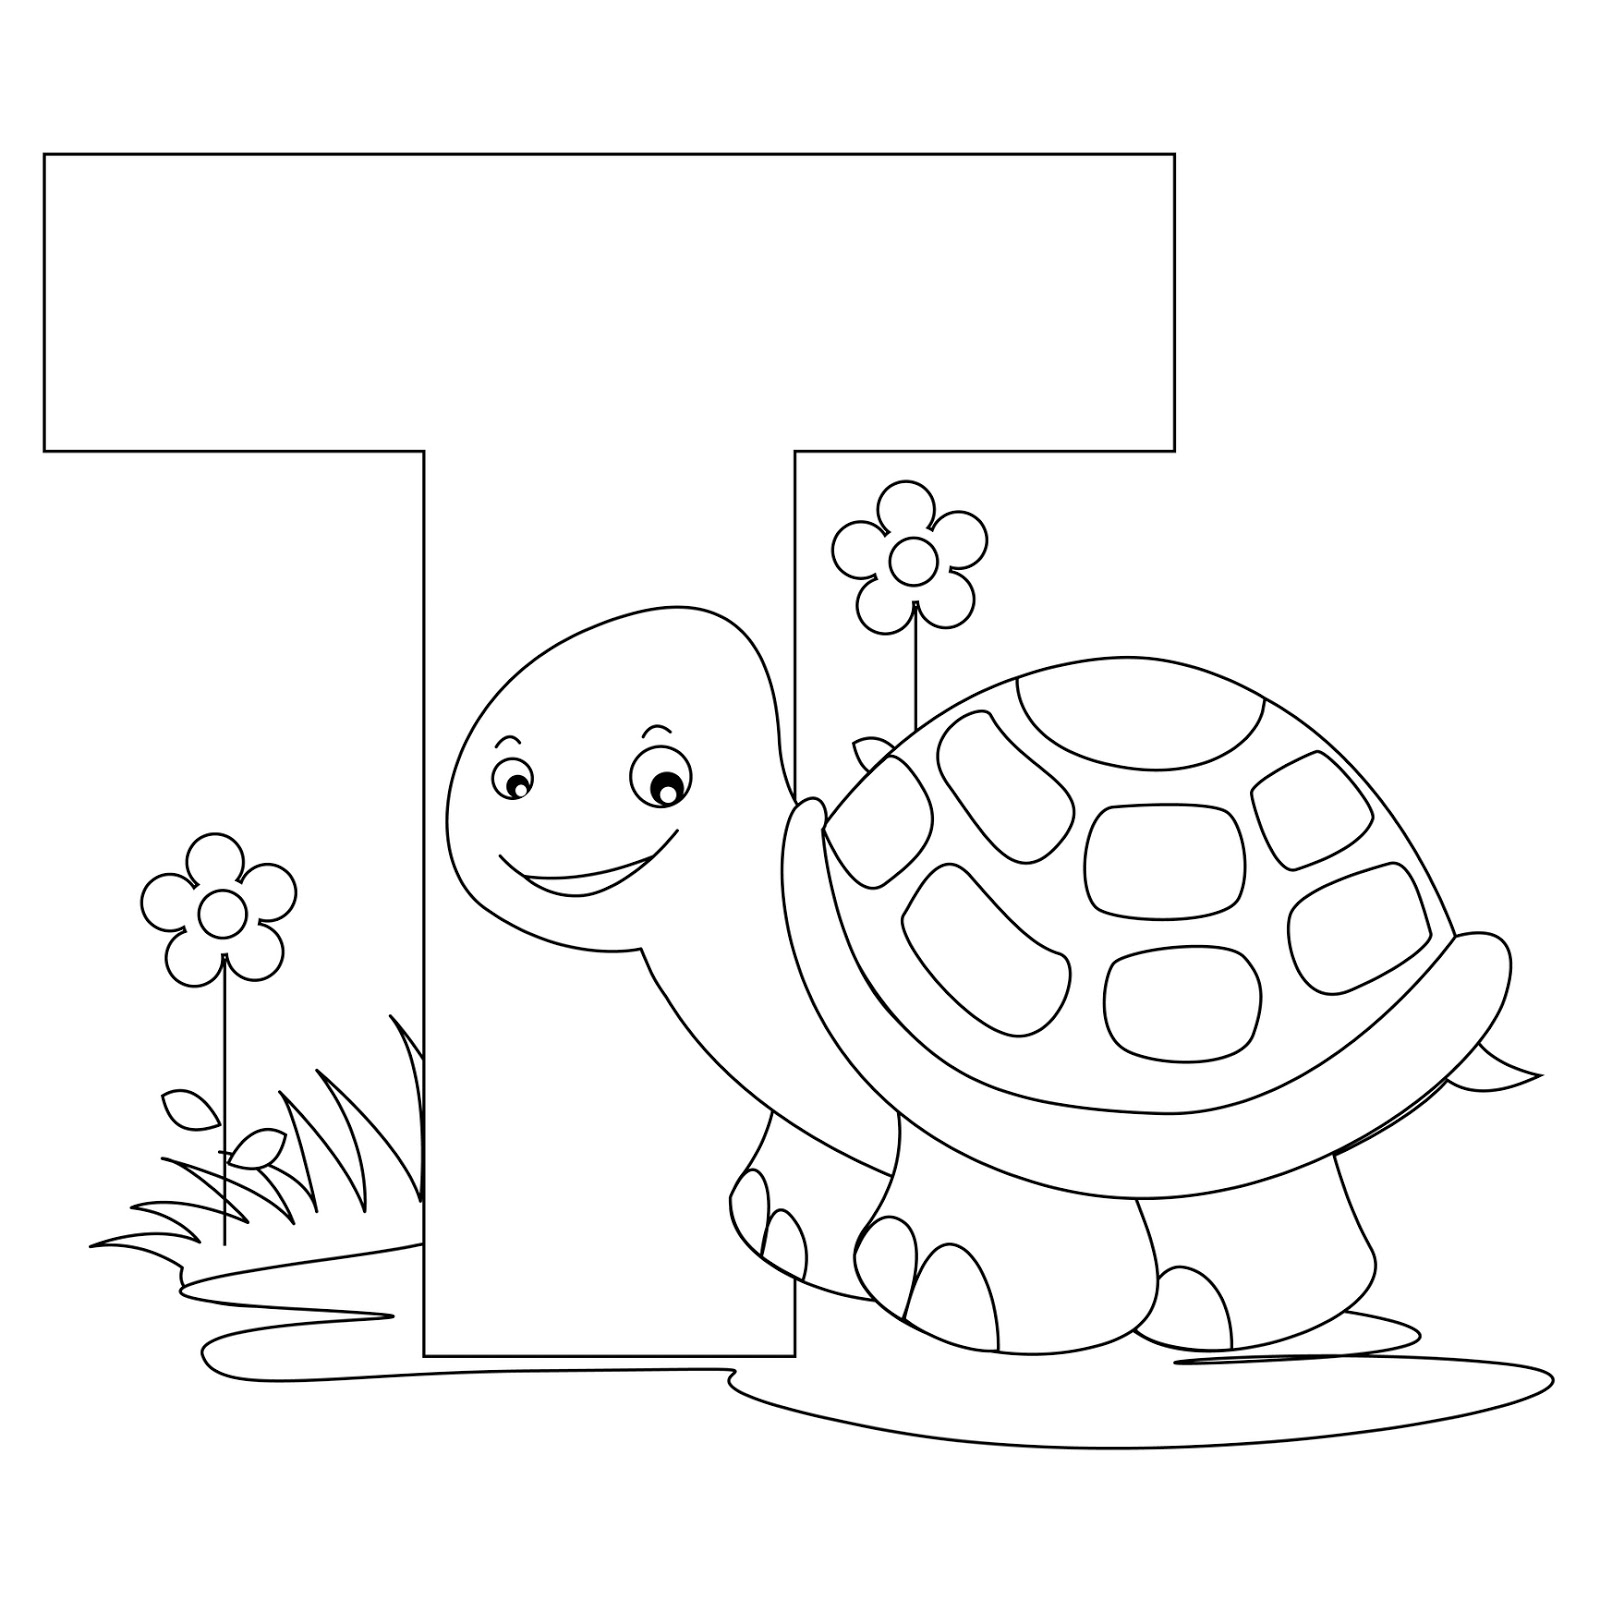 t coloring page t coloring pages coloring home page t coloring